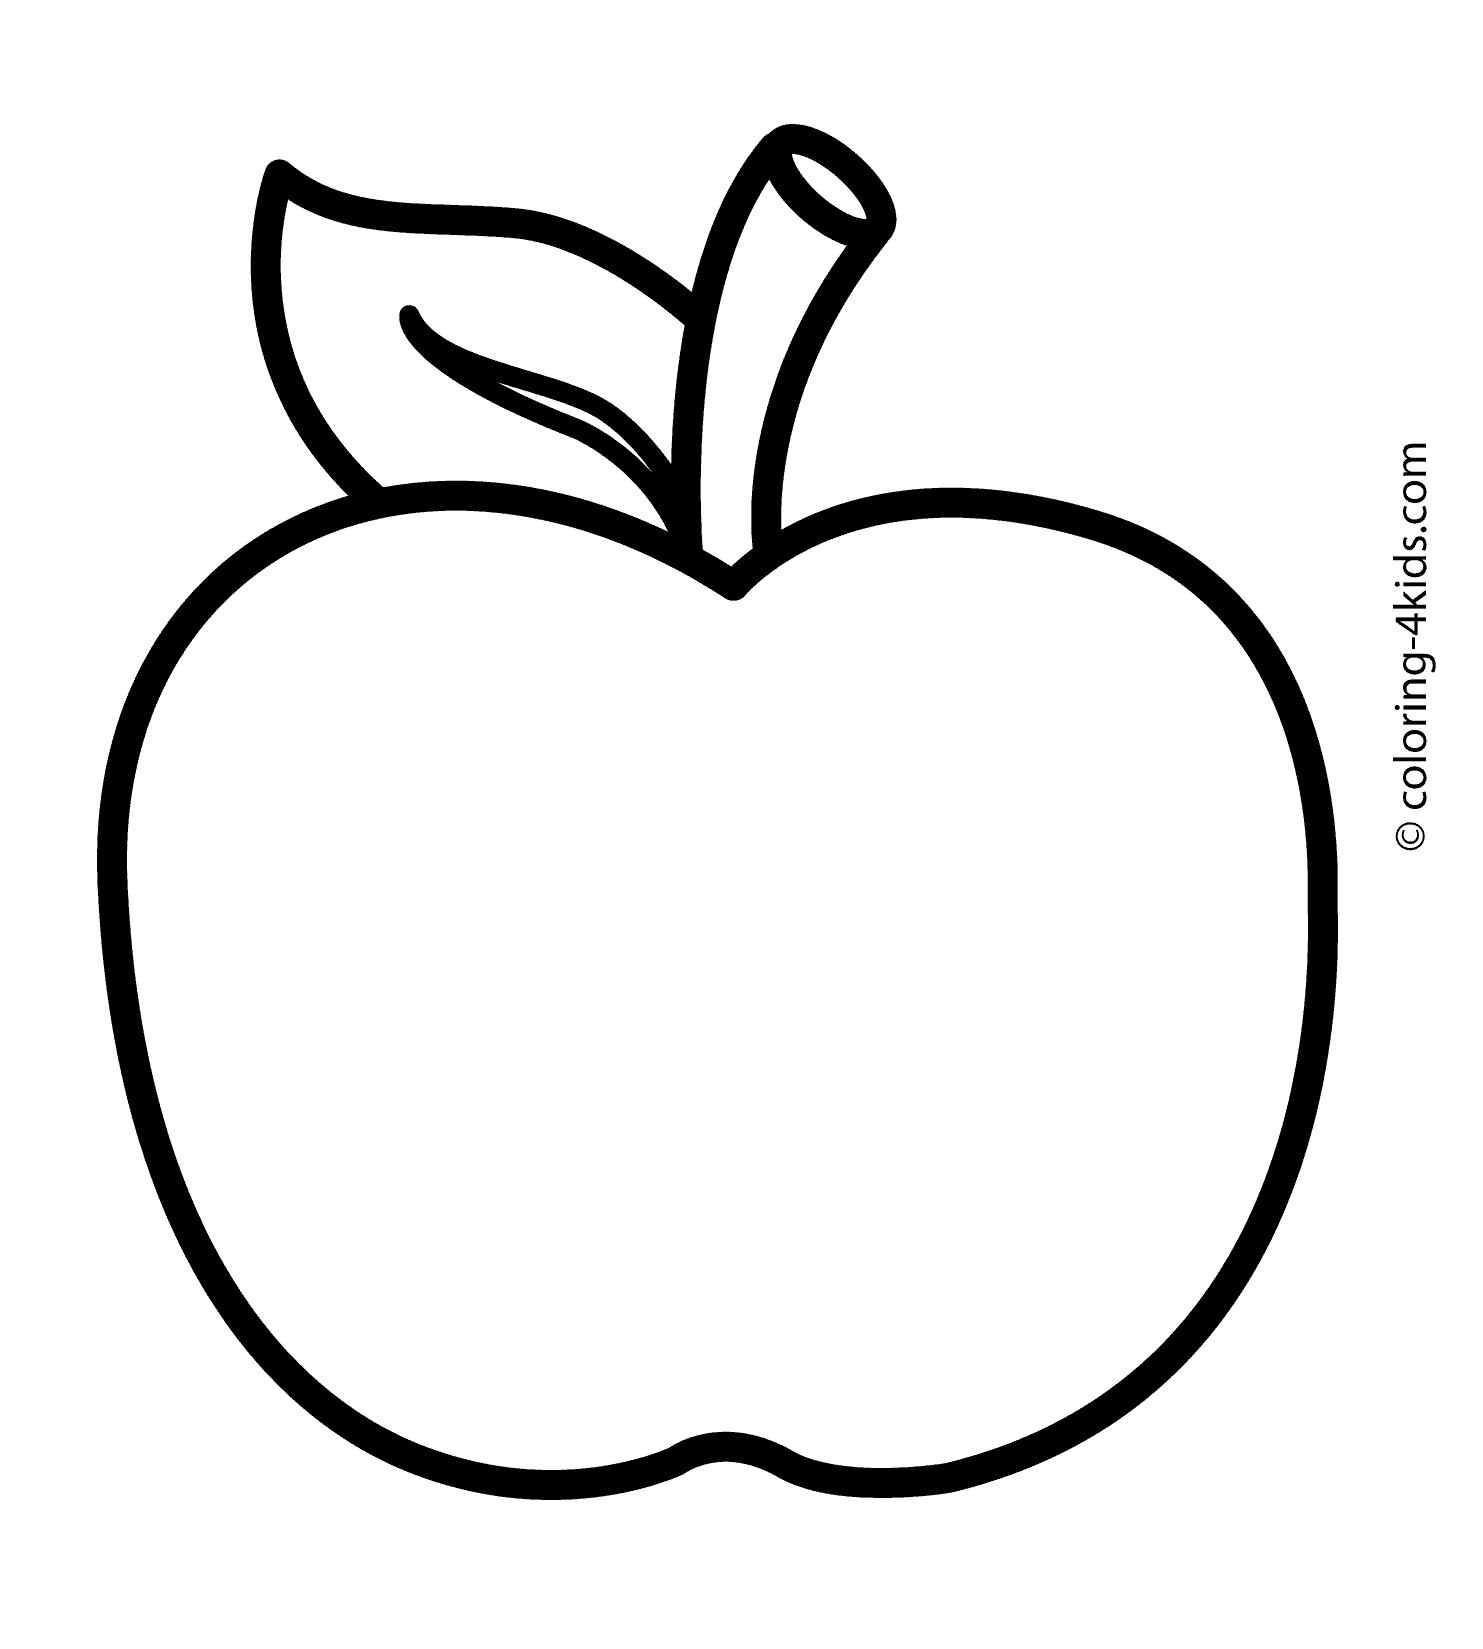 coloring apple worksheets for preschool a is for apple coloring page twisty noodle for coloring preschool worksheets apple